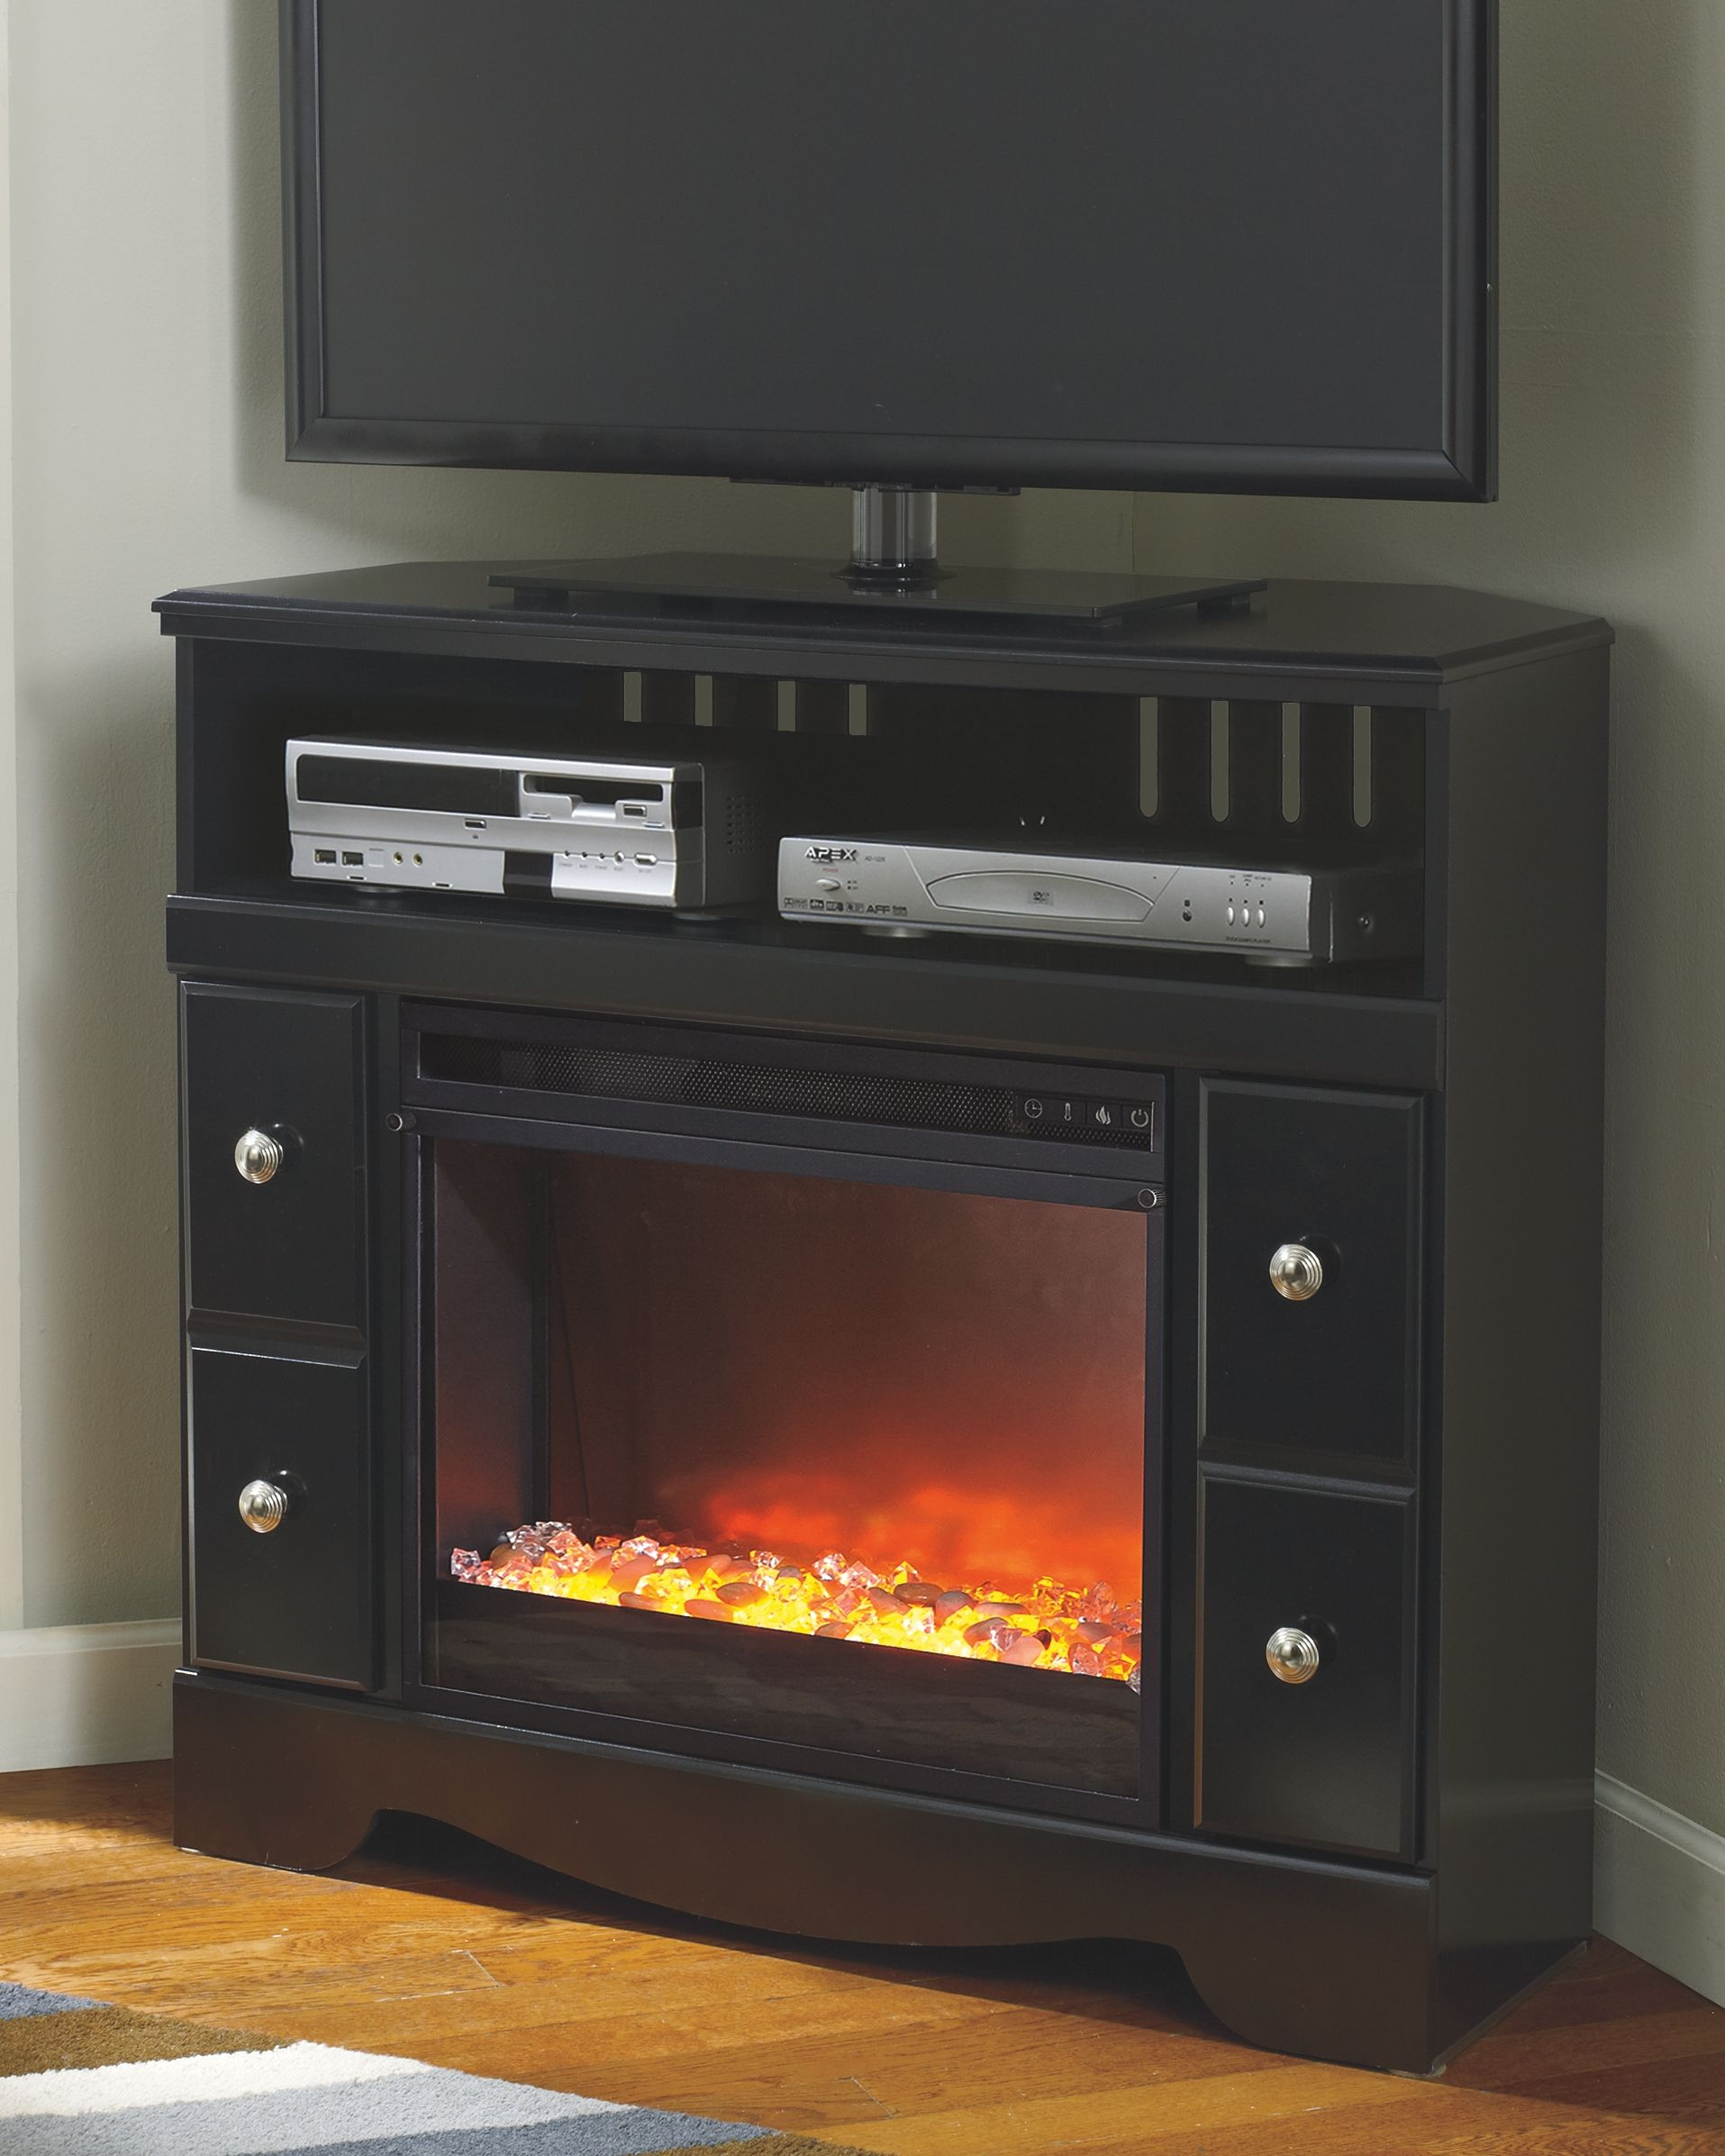 Fabulous Shay 38 Tv Stand With Electric Fireplace In 2019 Products Download Free Architecture Designs Scobabritishbridgeorg